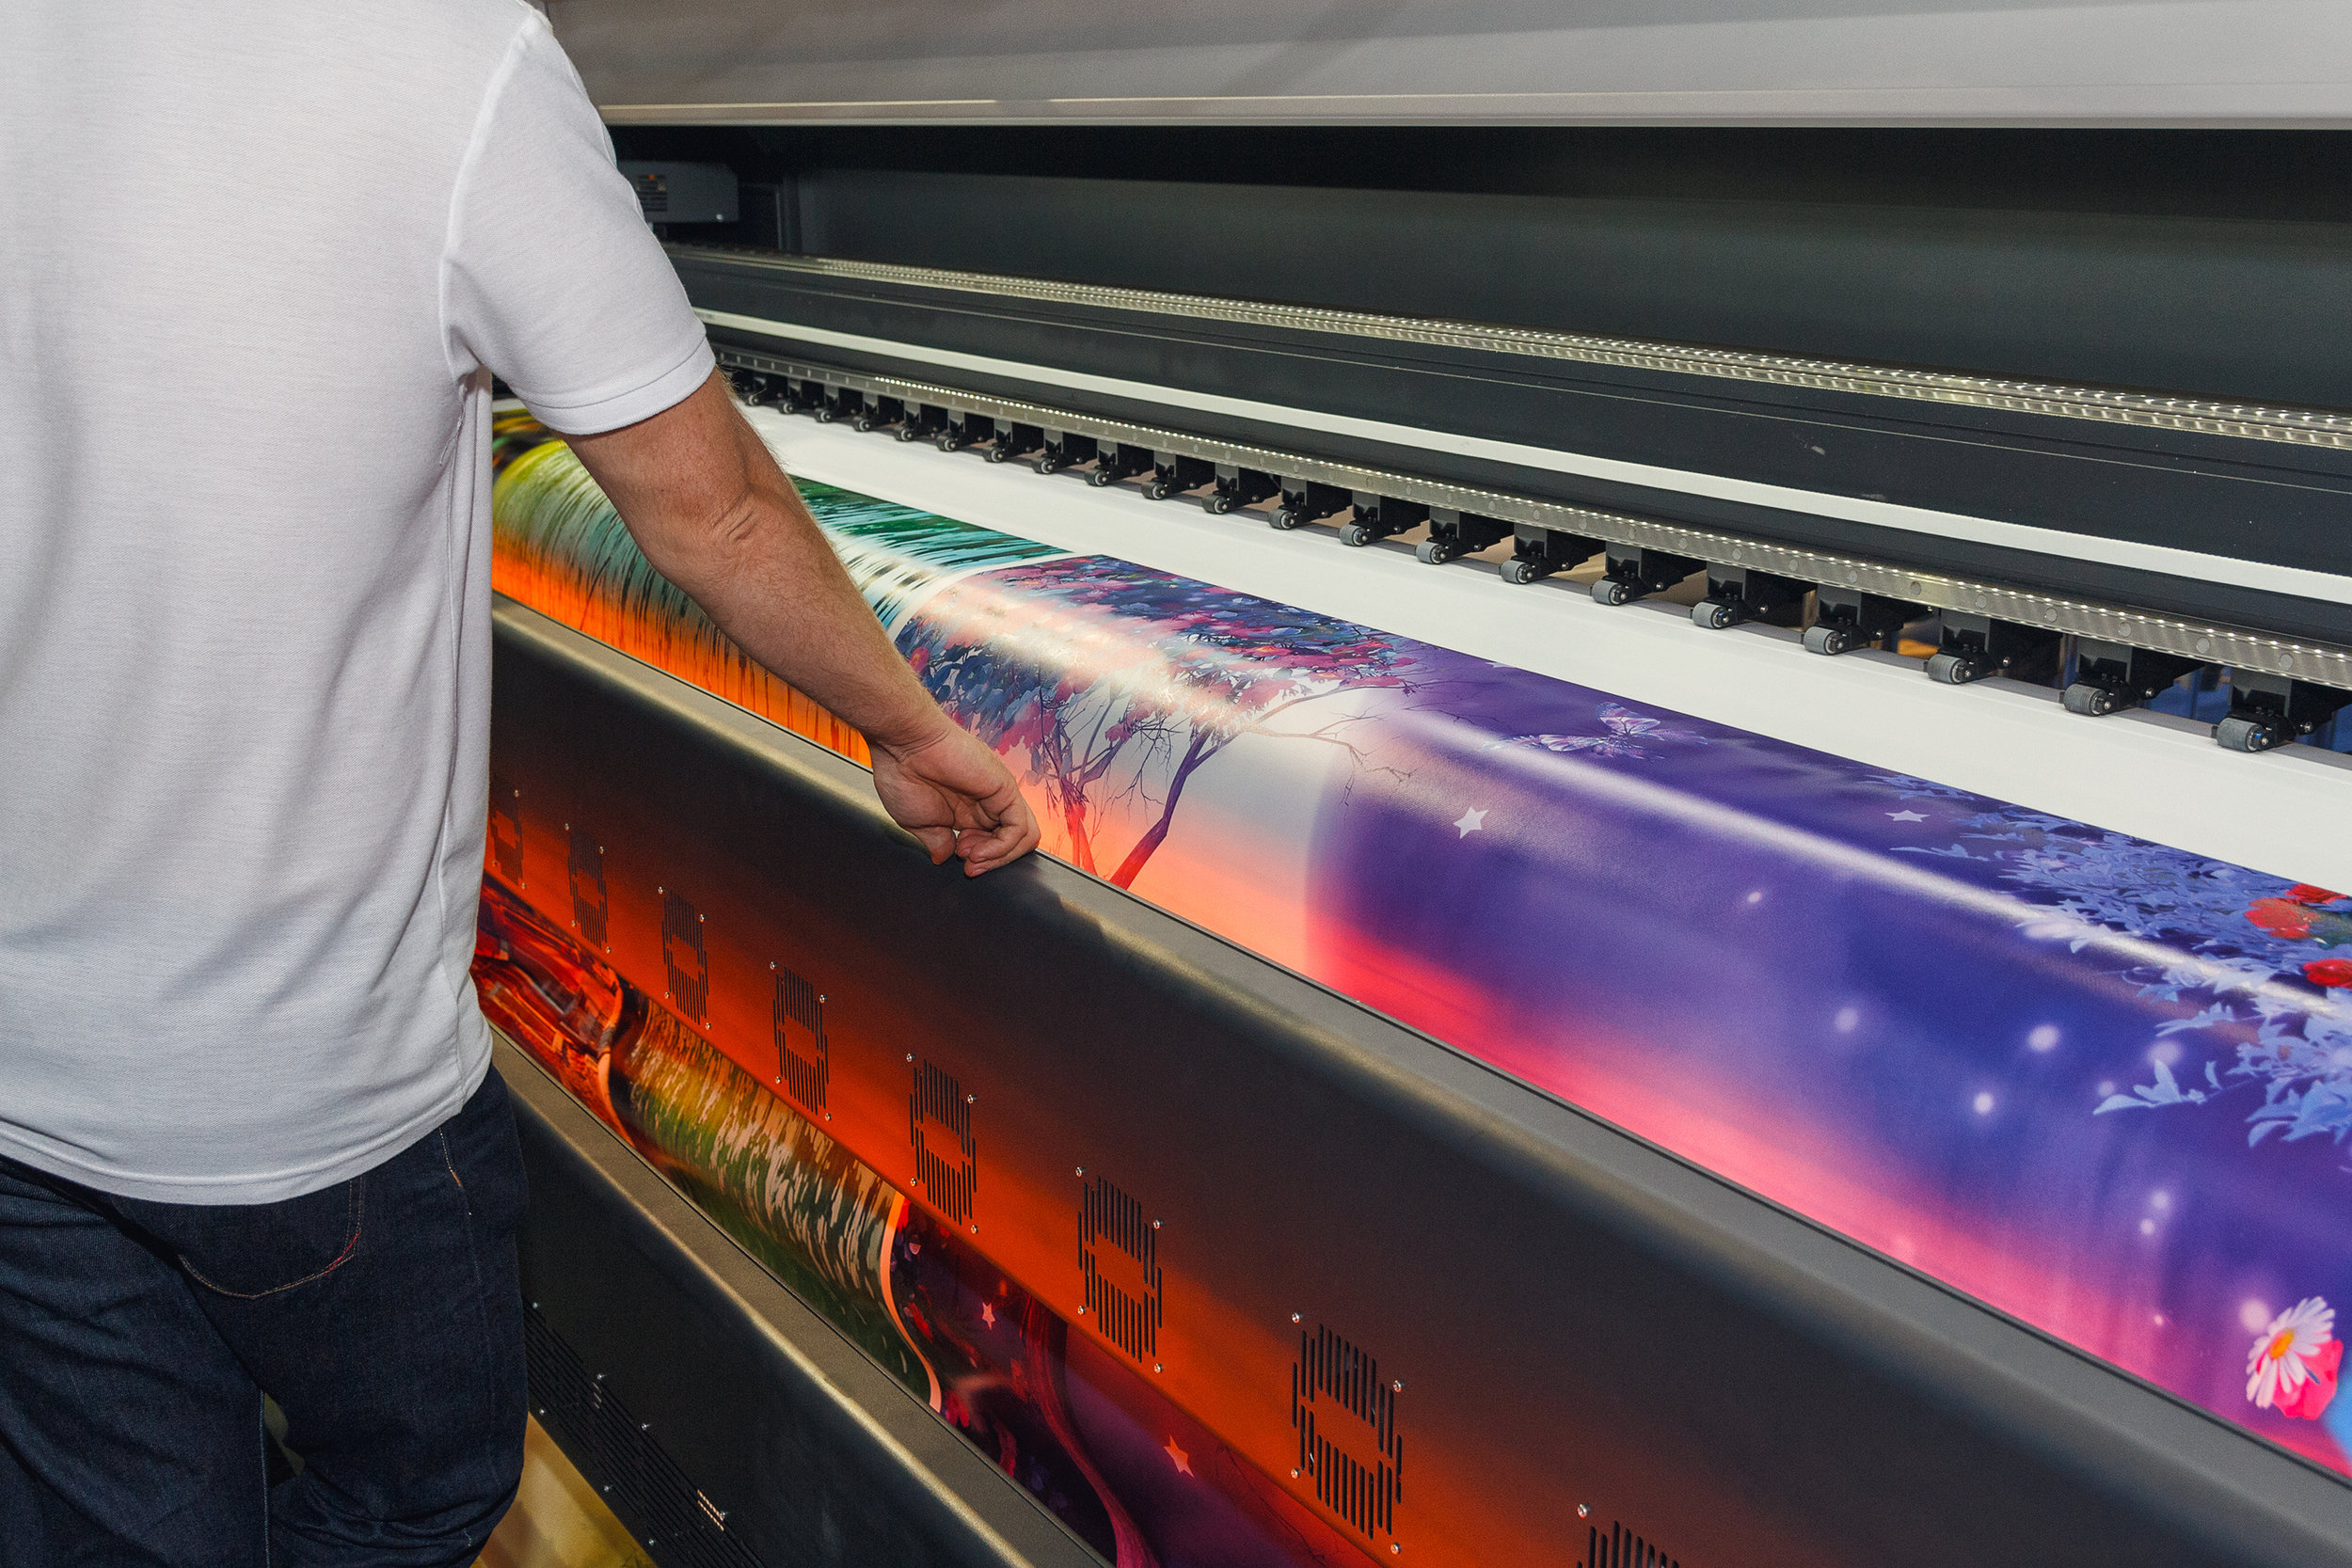 large-format-digital-printing-services-malvern-worcestershire-red-penguin-uk